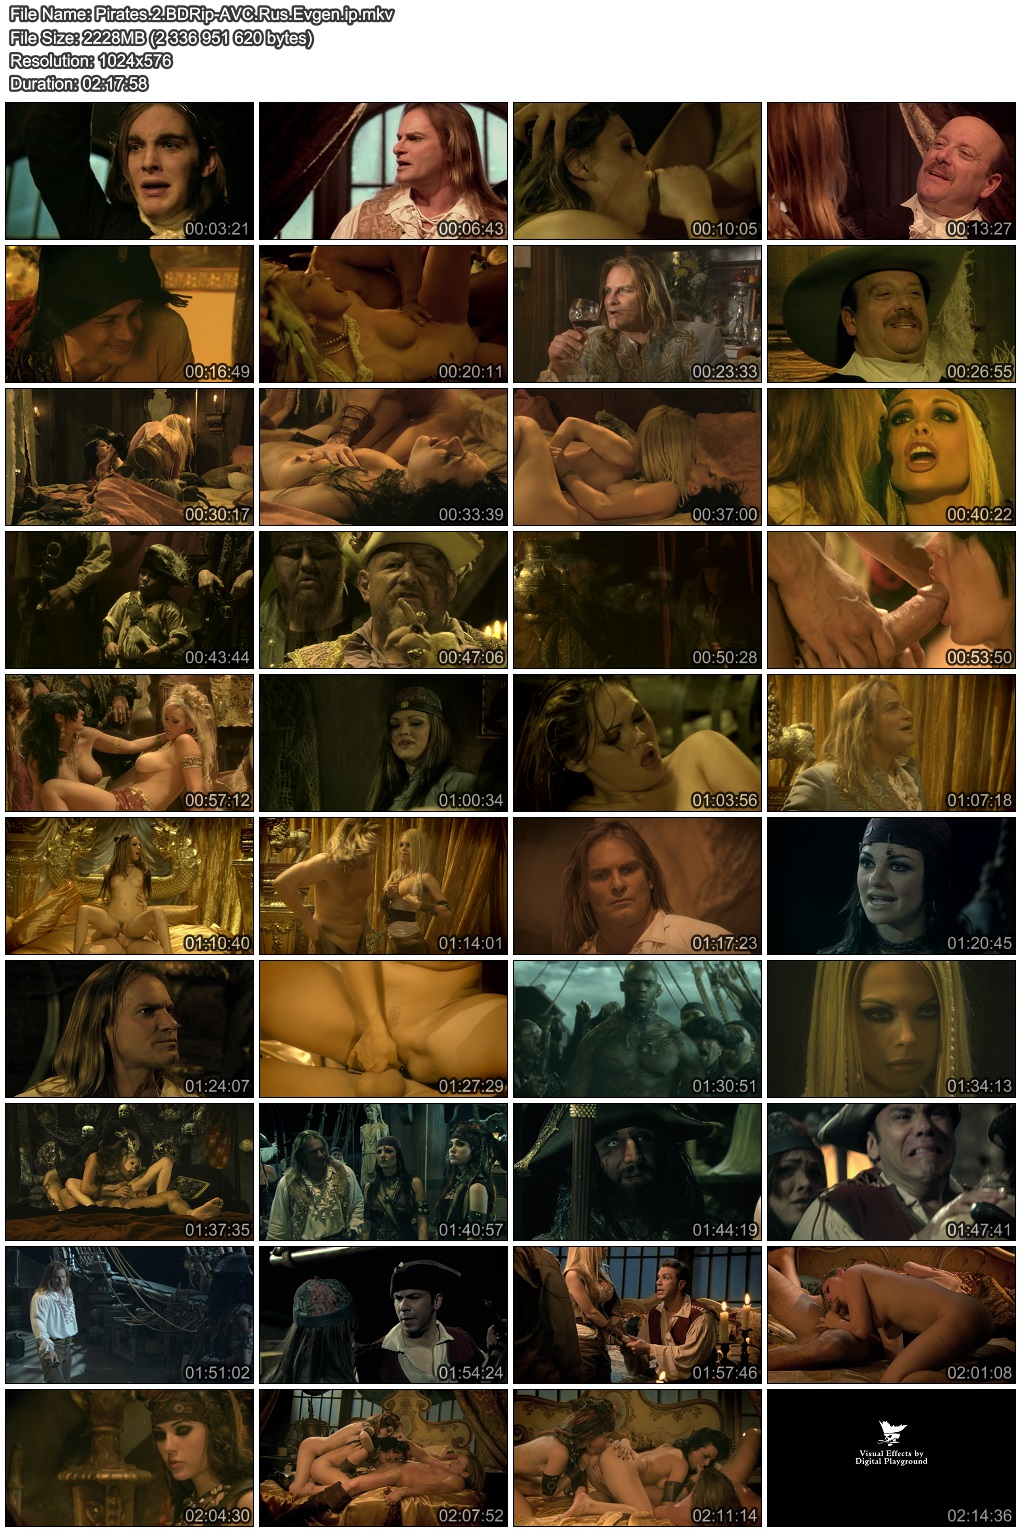 Pirate movie xxx a sexy movie pics erotic films